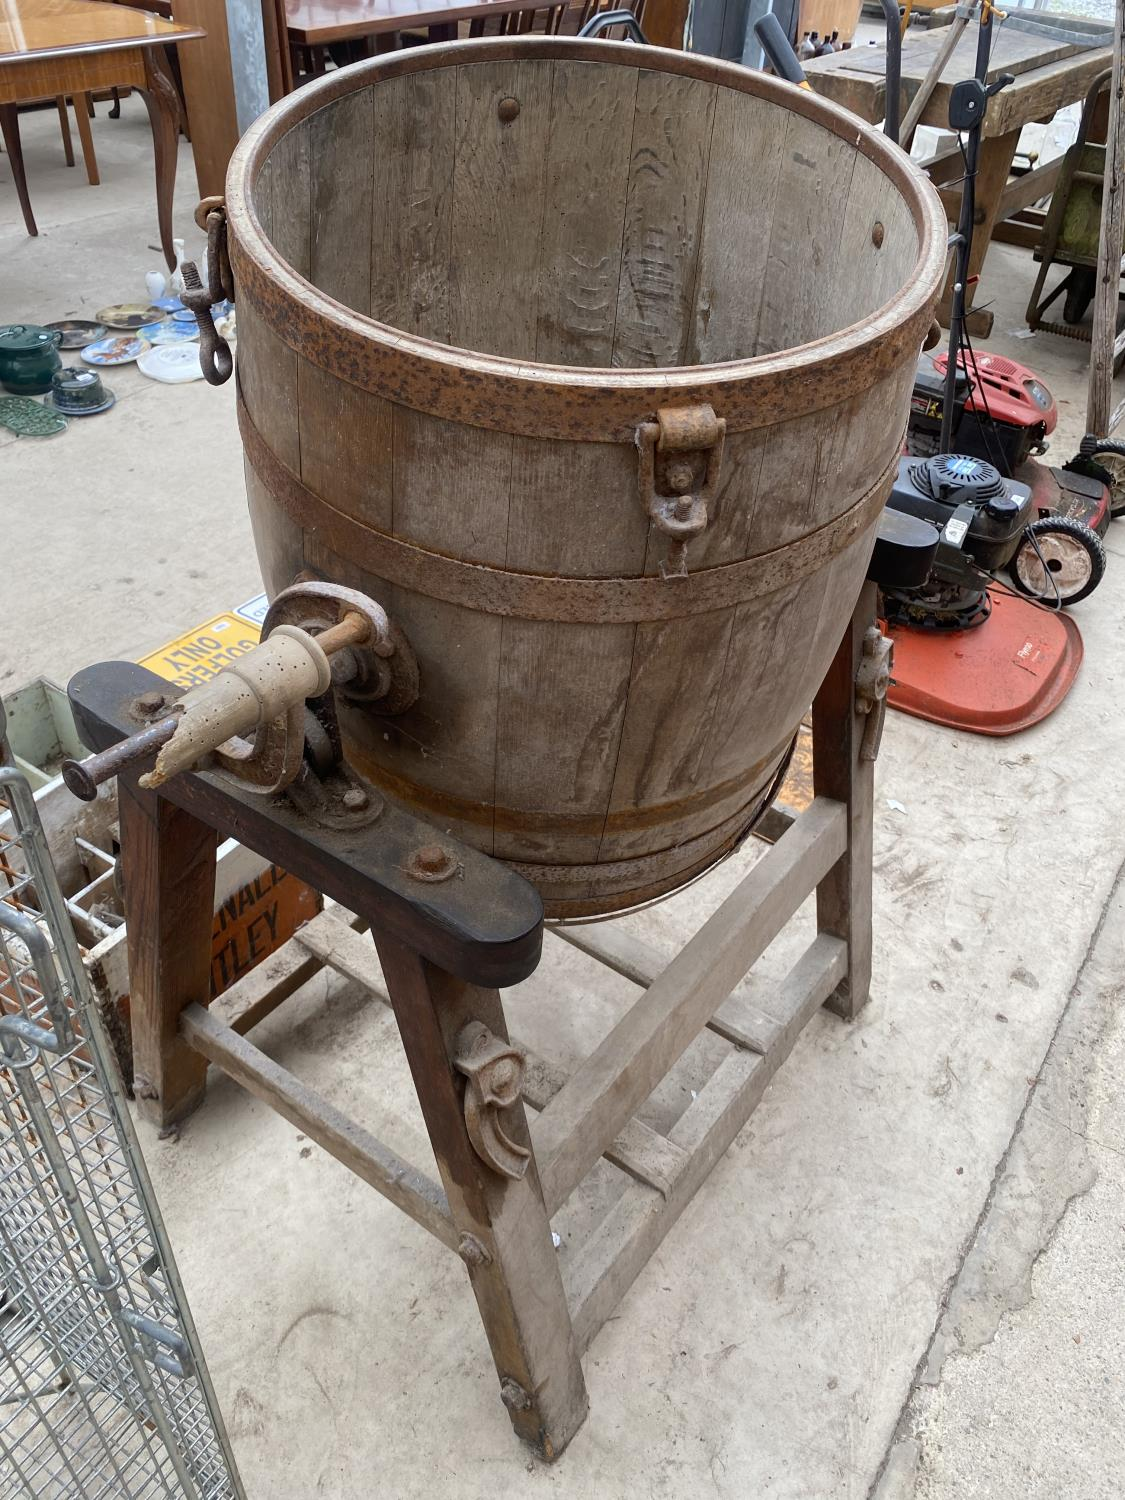 A LARGE VINTAGE BUTTER CHURN WITH STAND - Image 5 of 6